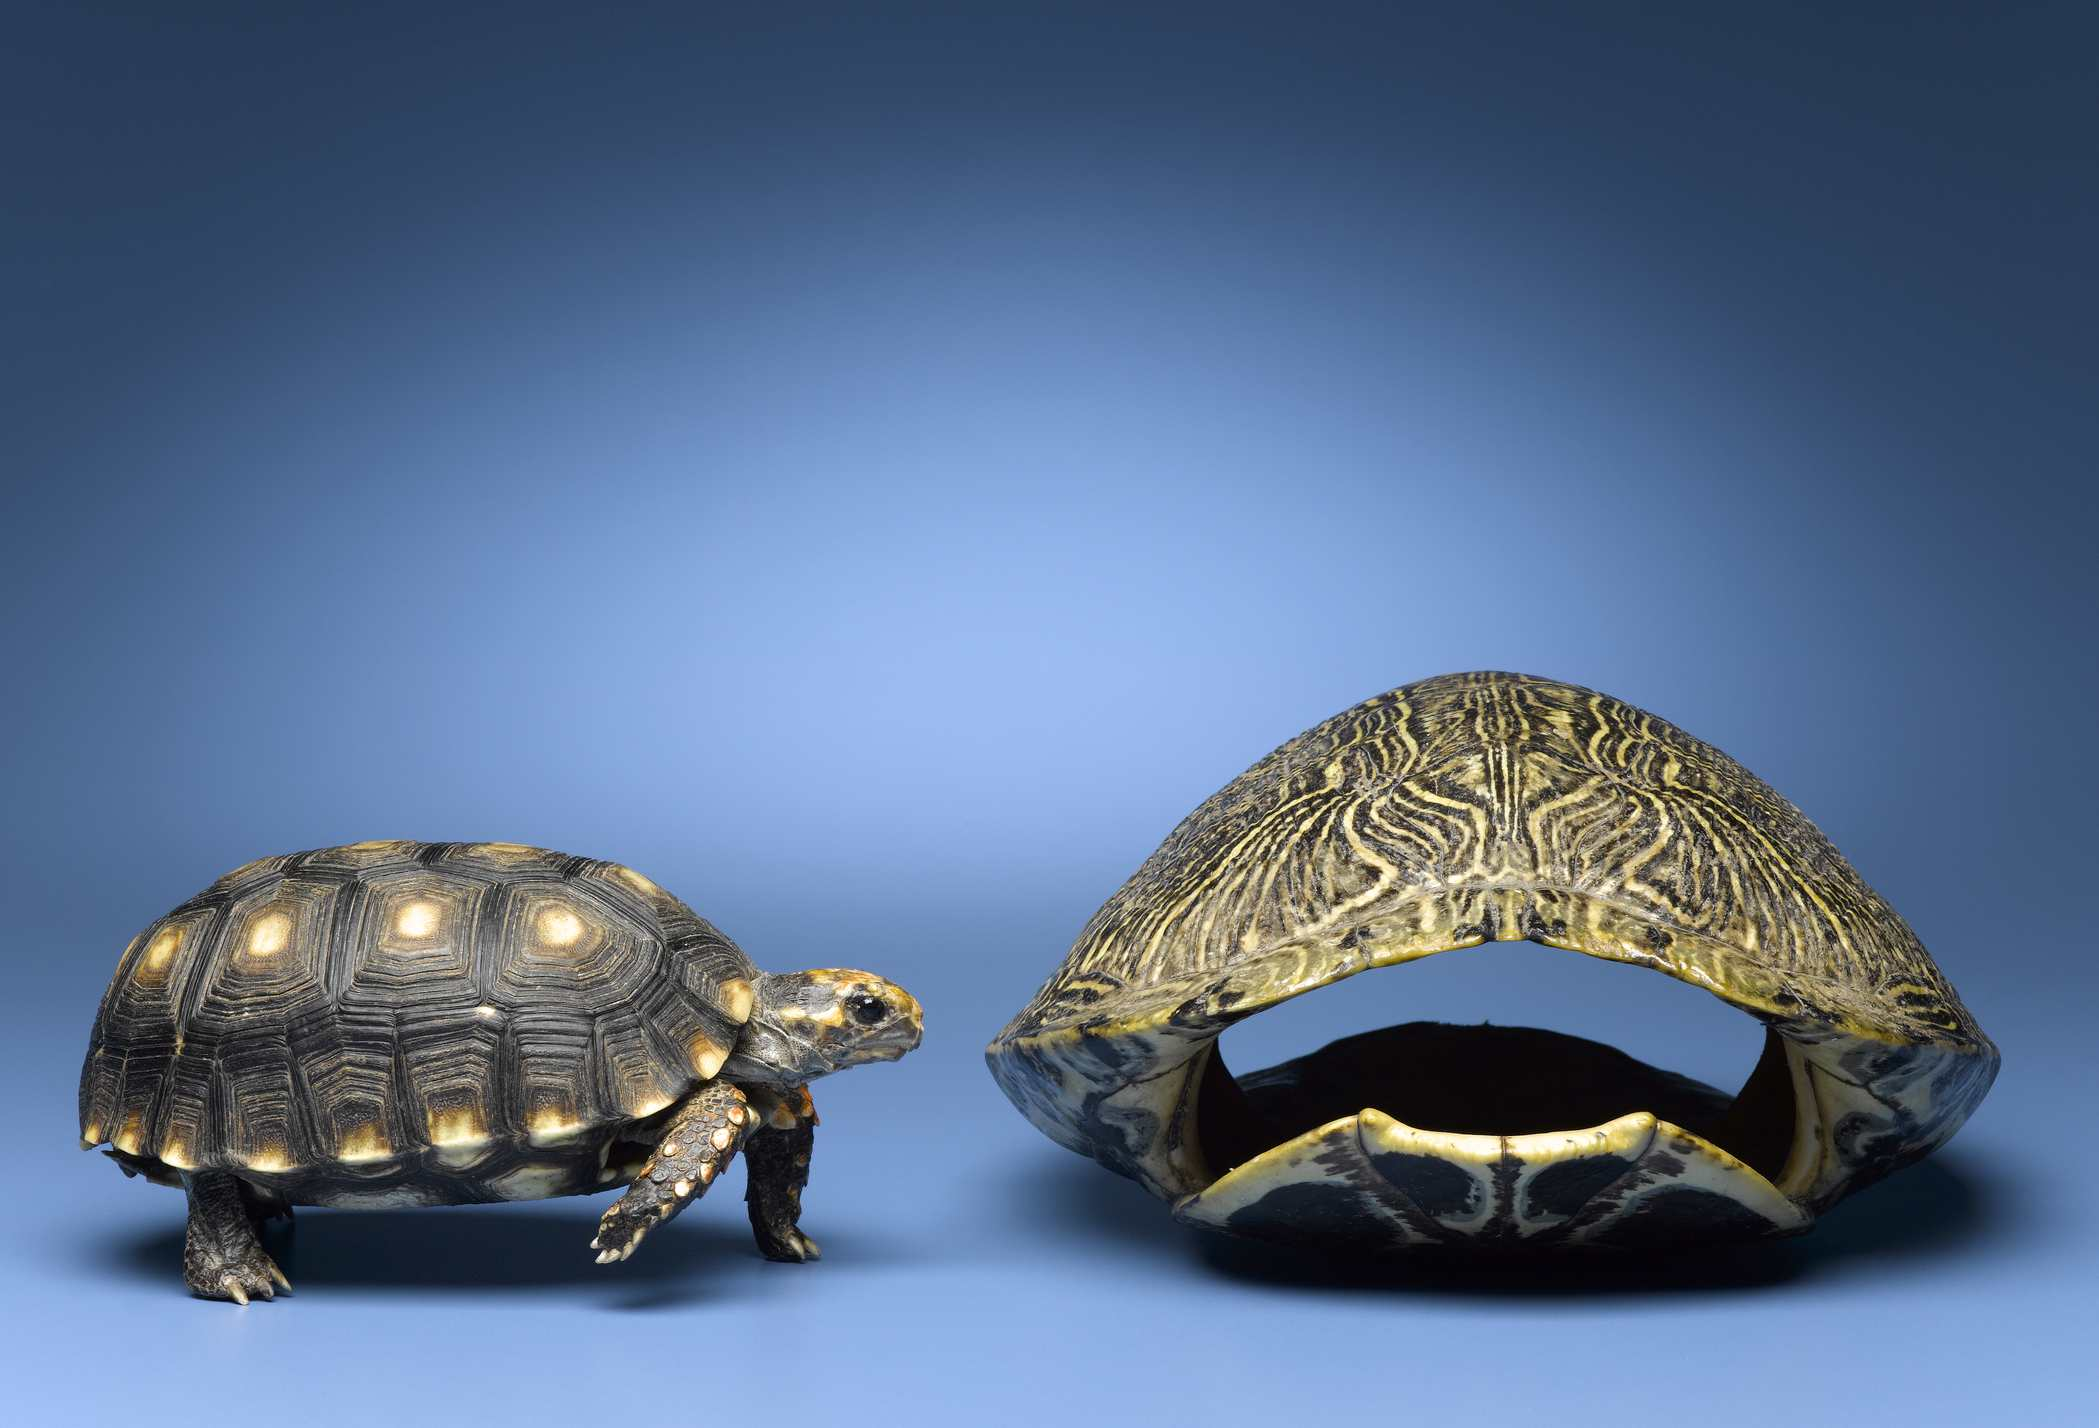 A turtle looking at an empty turtle shell on a blue background.